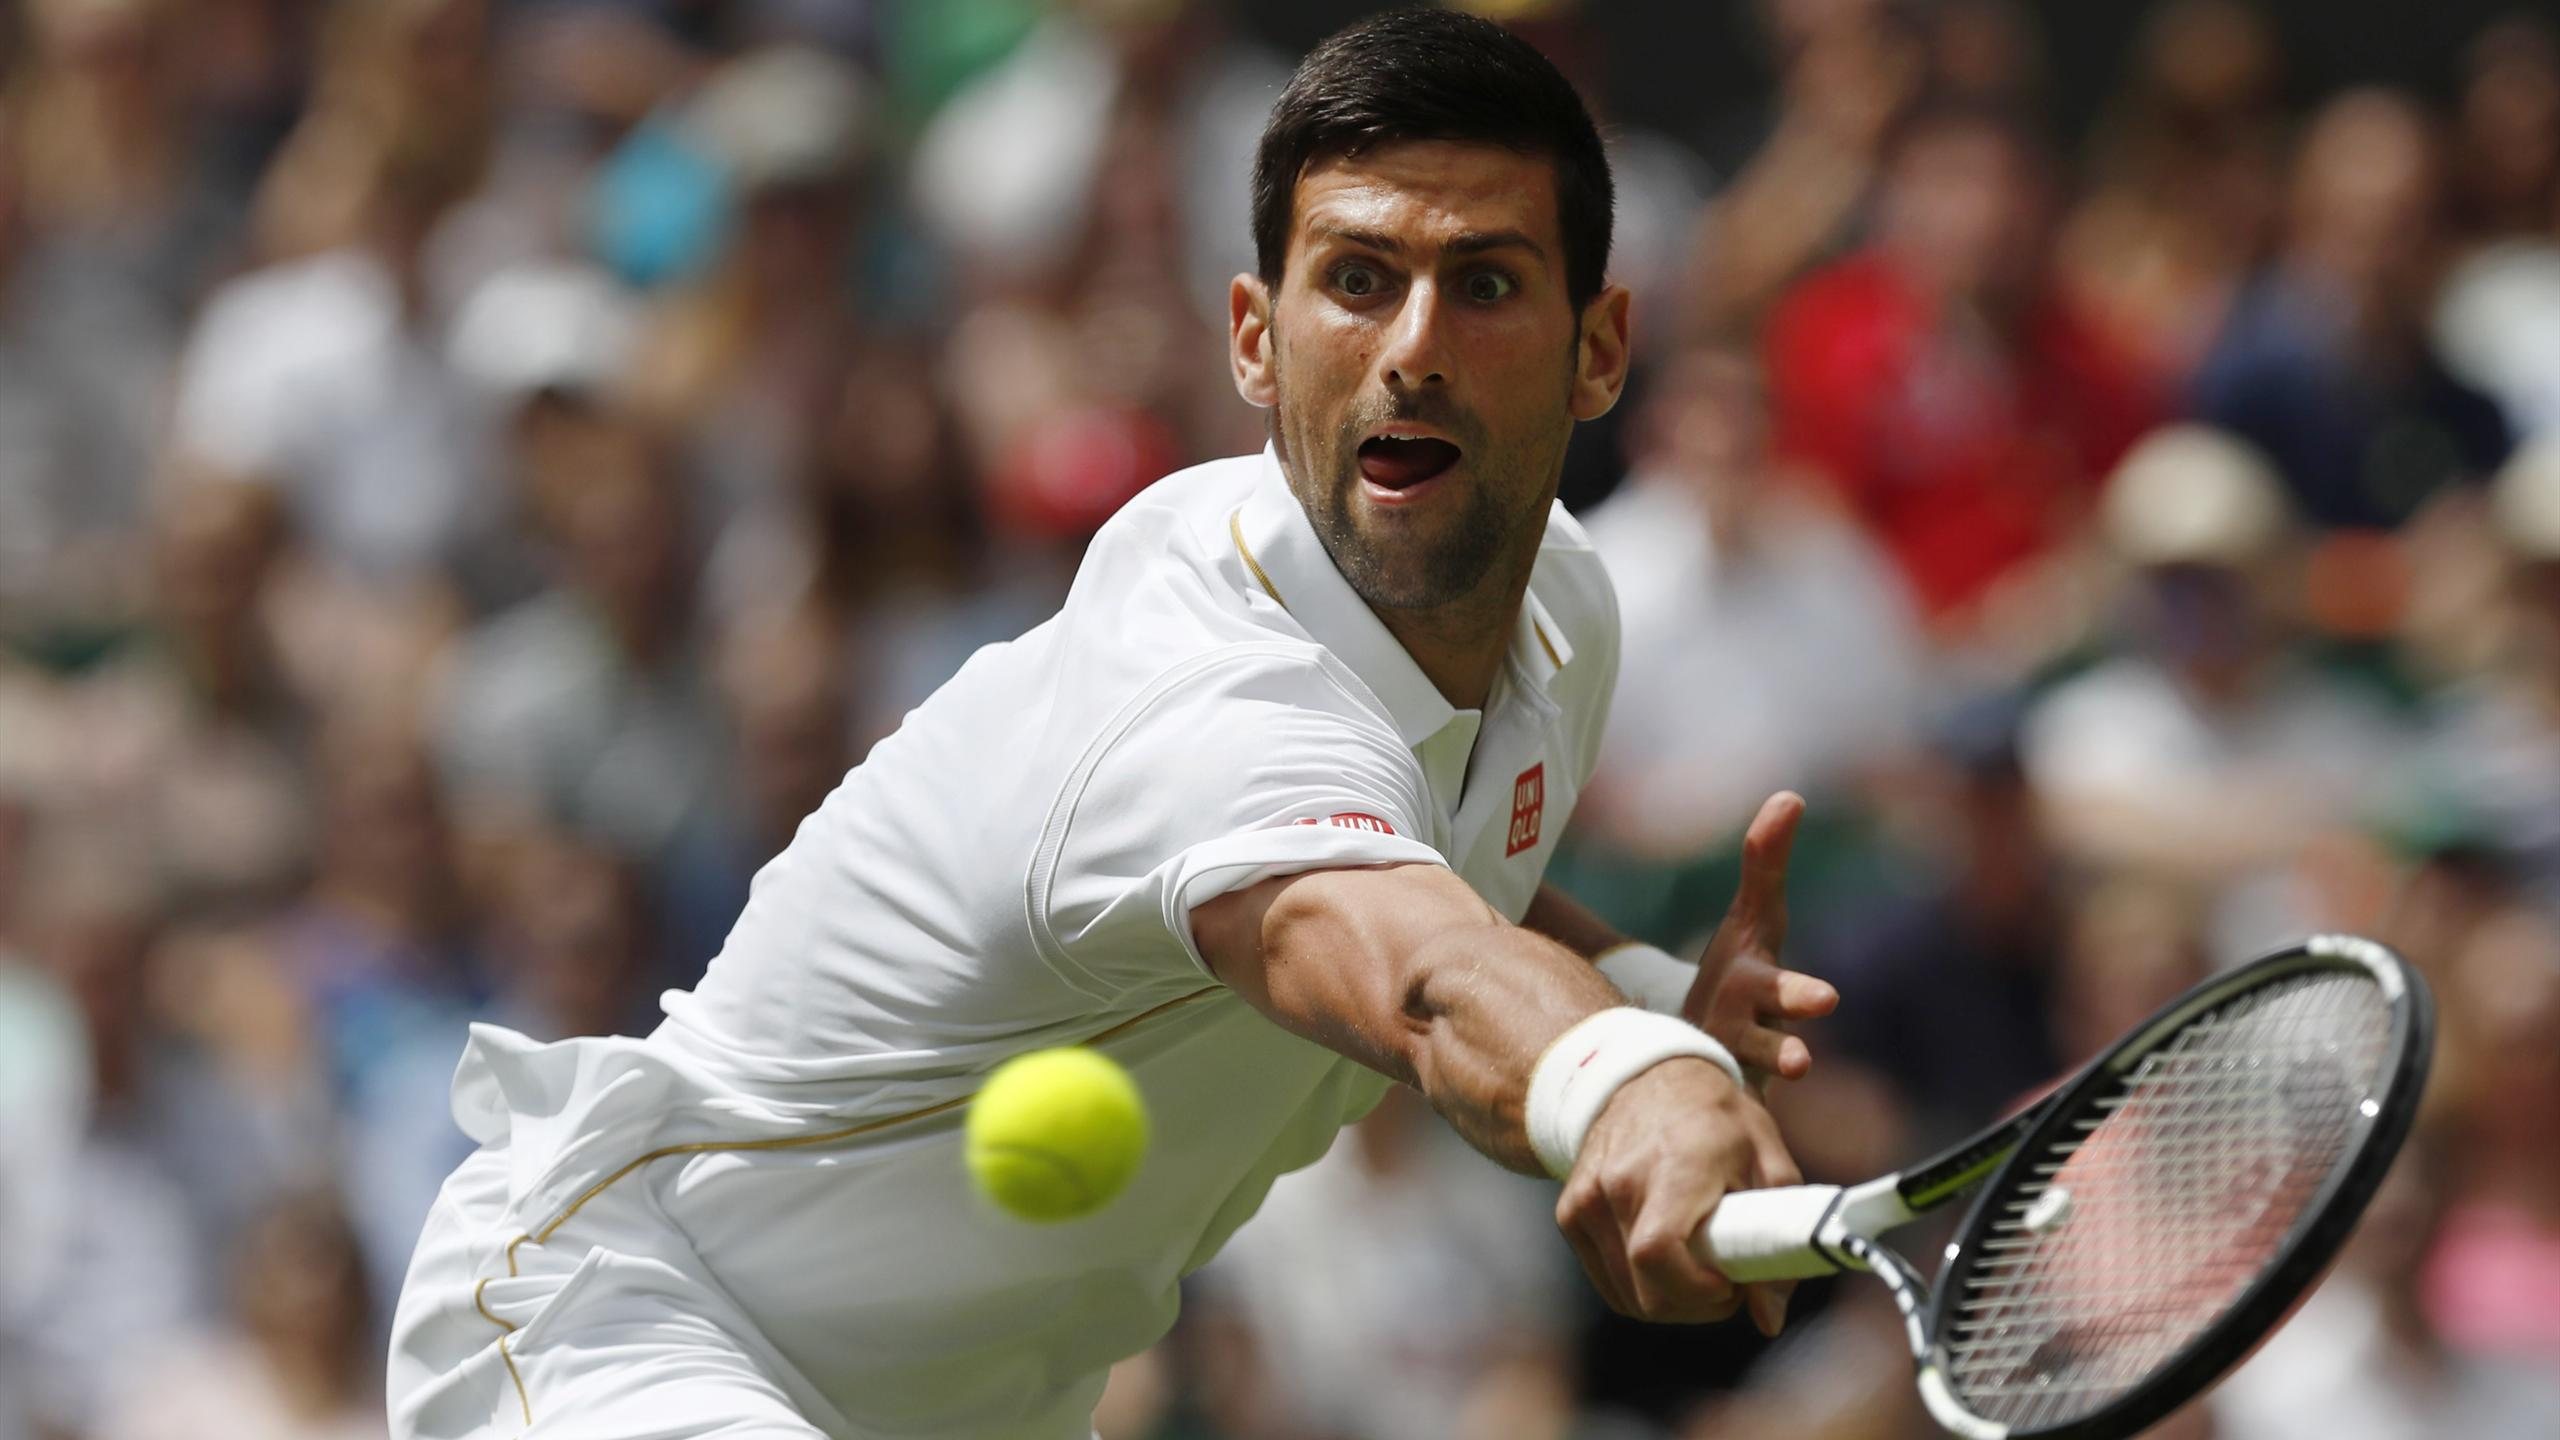 Serbia's Novak Djokovic in action against Great Britain's James Ward